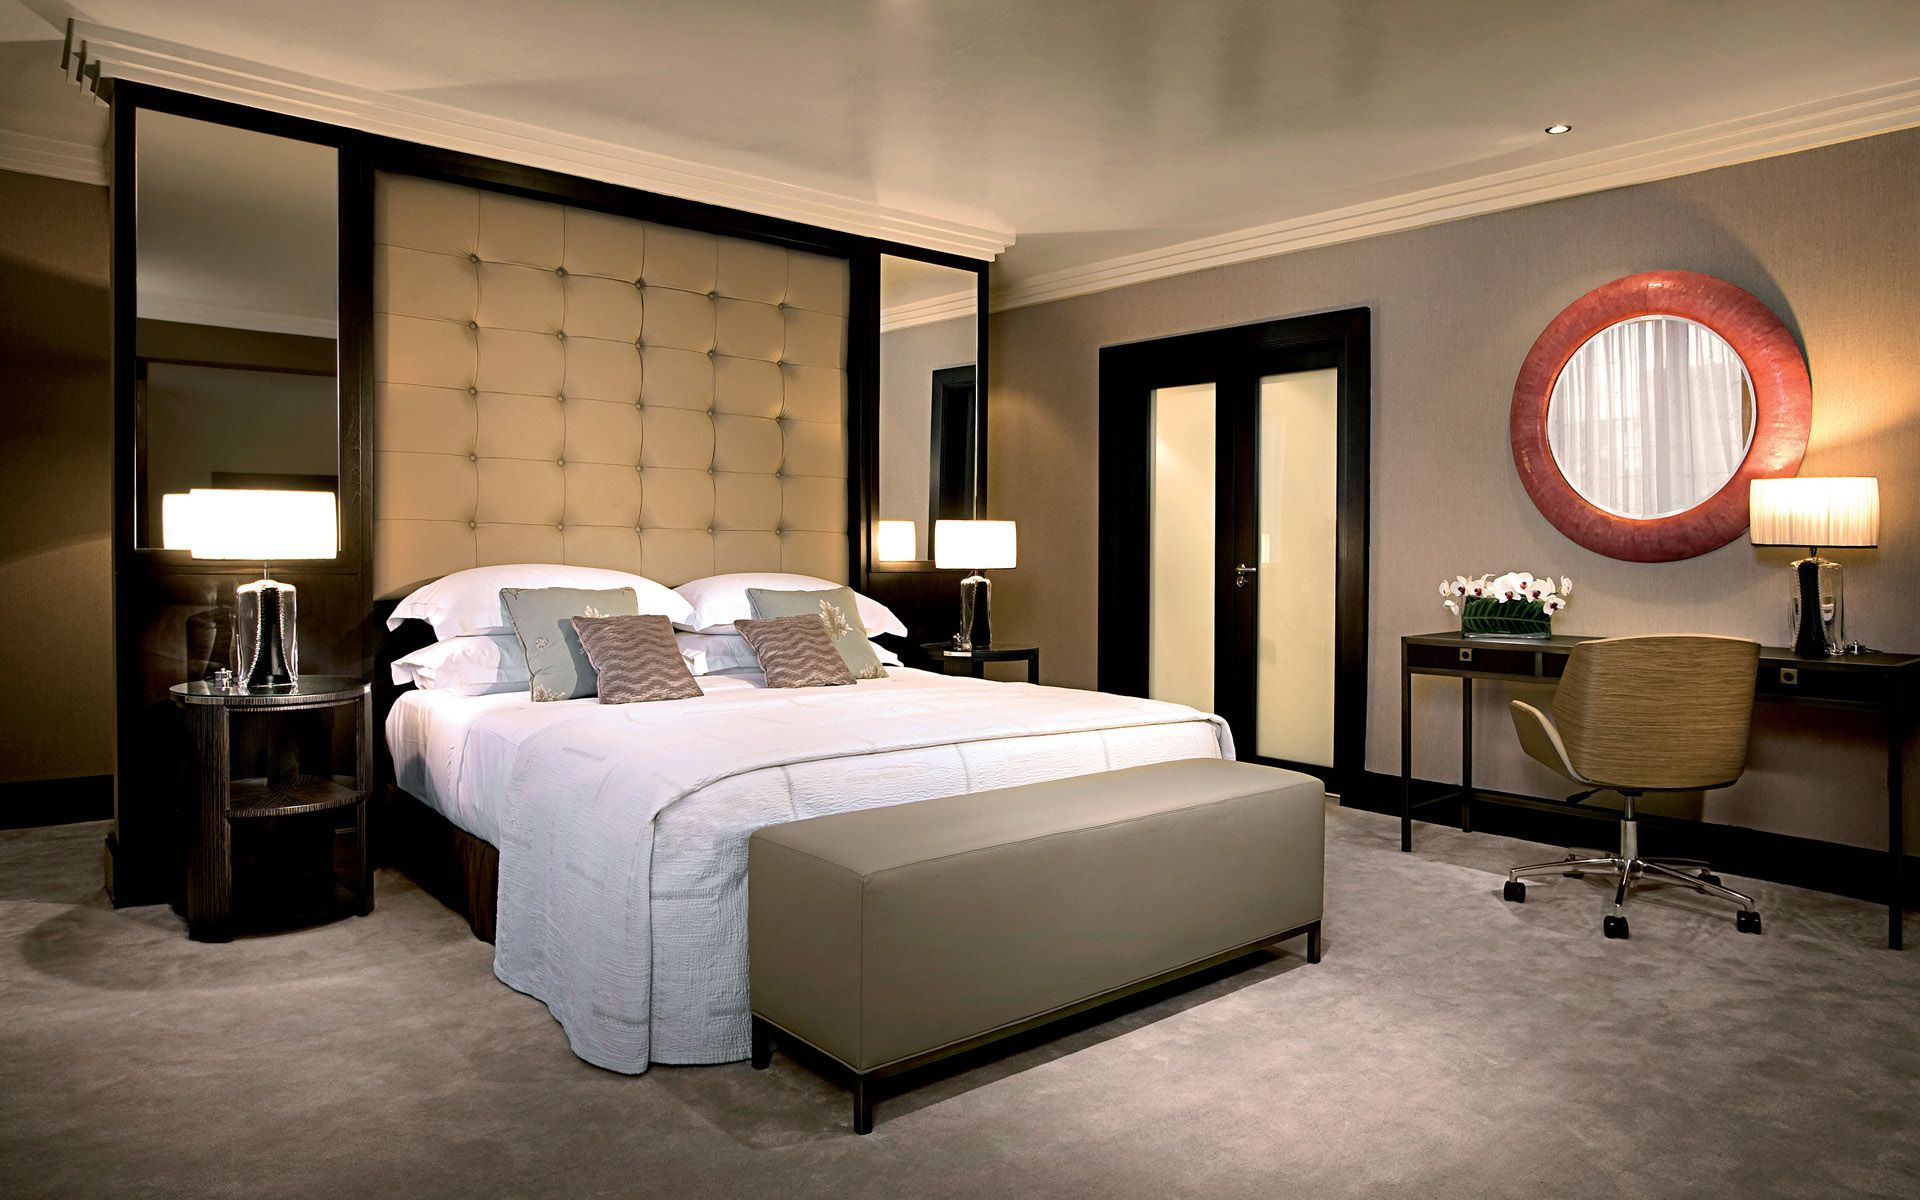 Image of Bedroom Ideas for Young Adults